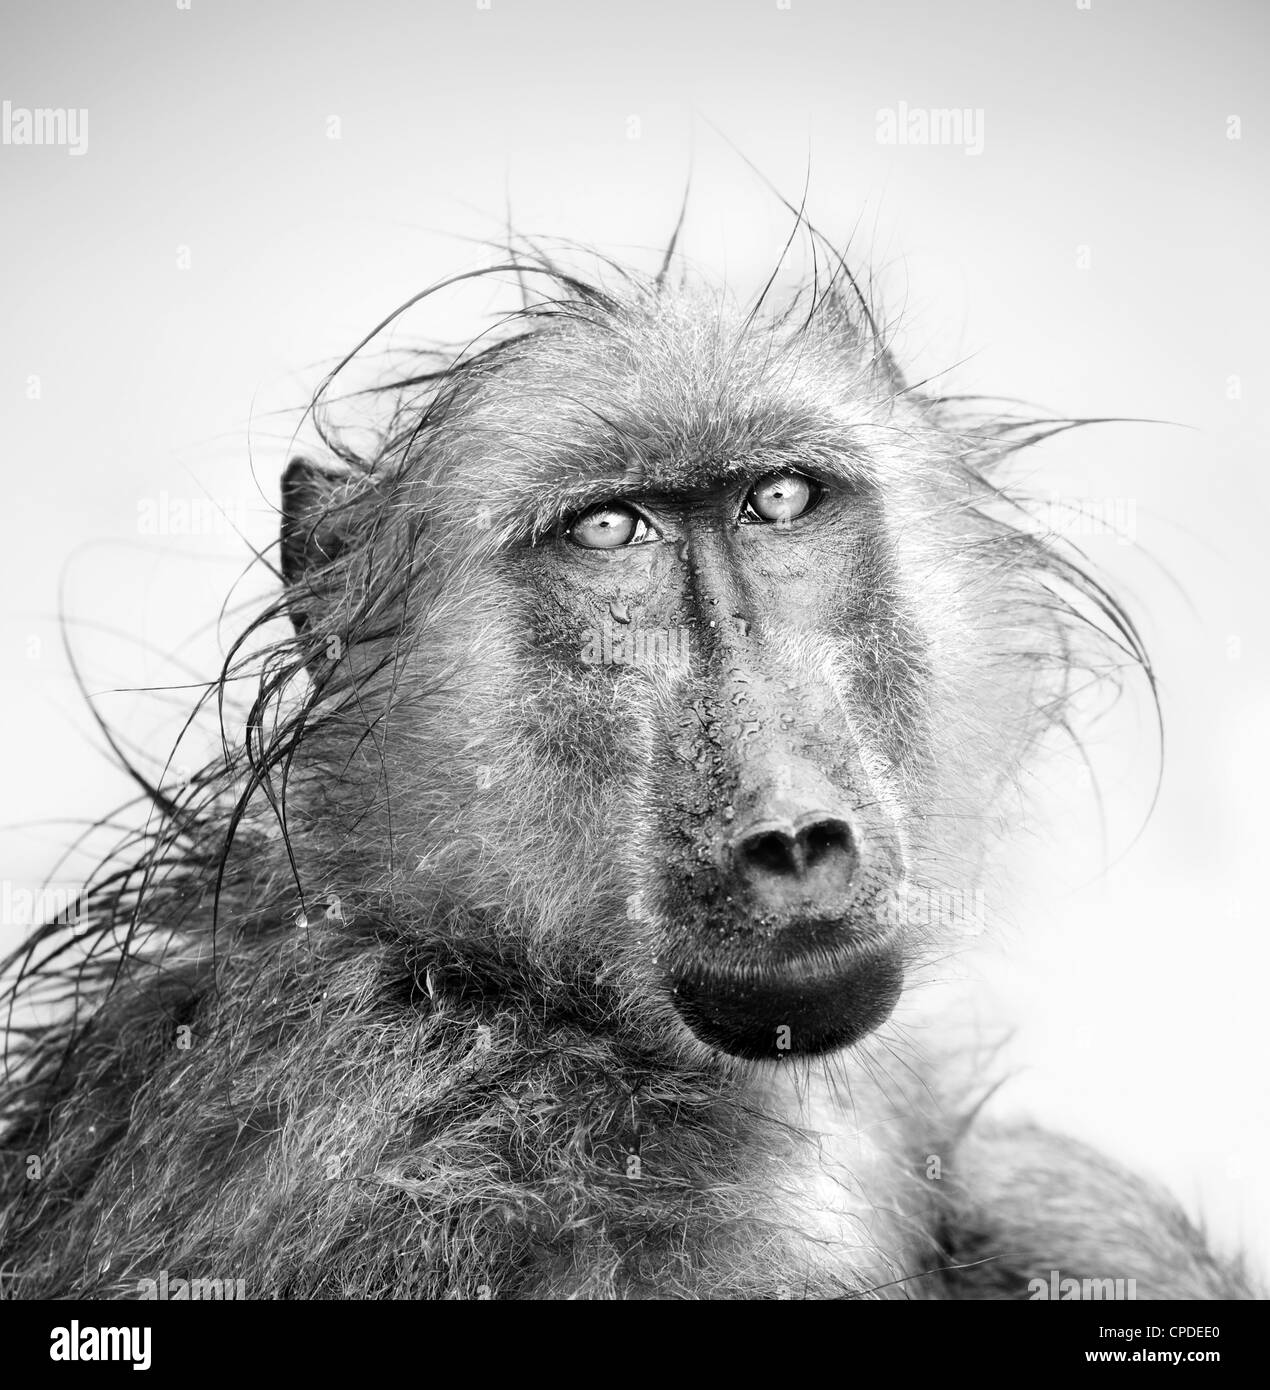 Baboon in rain (Artistic processing) Stock Foto